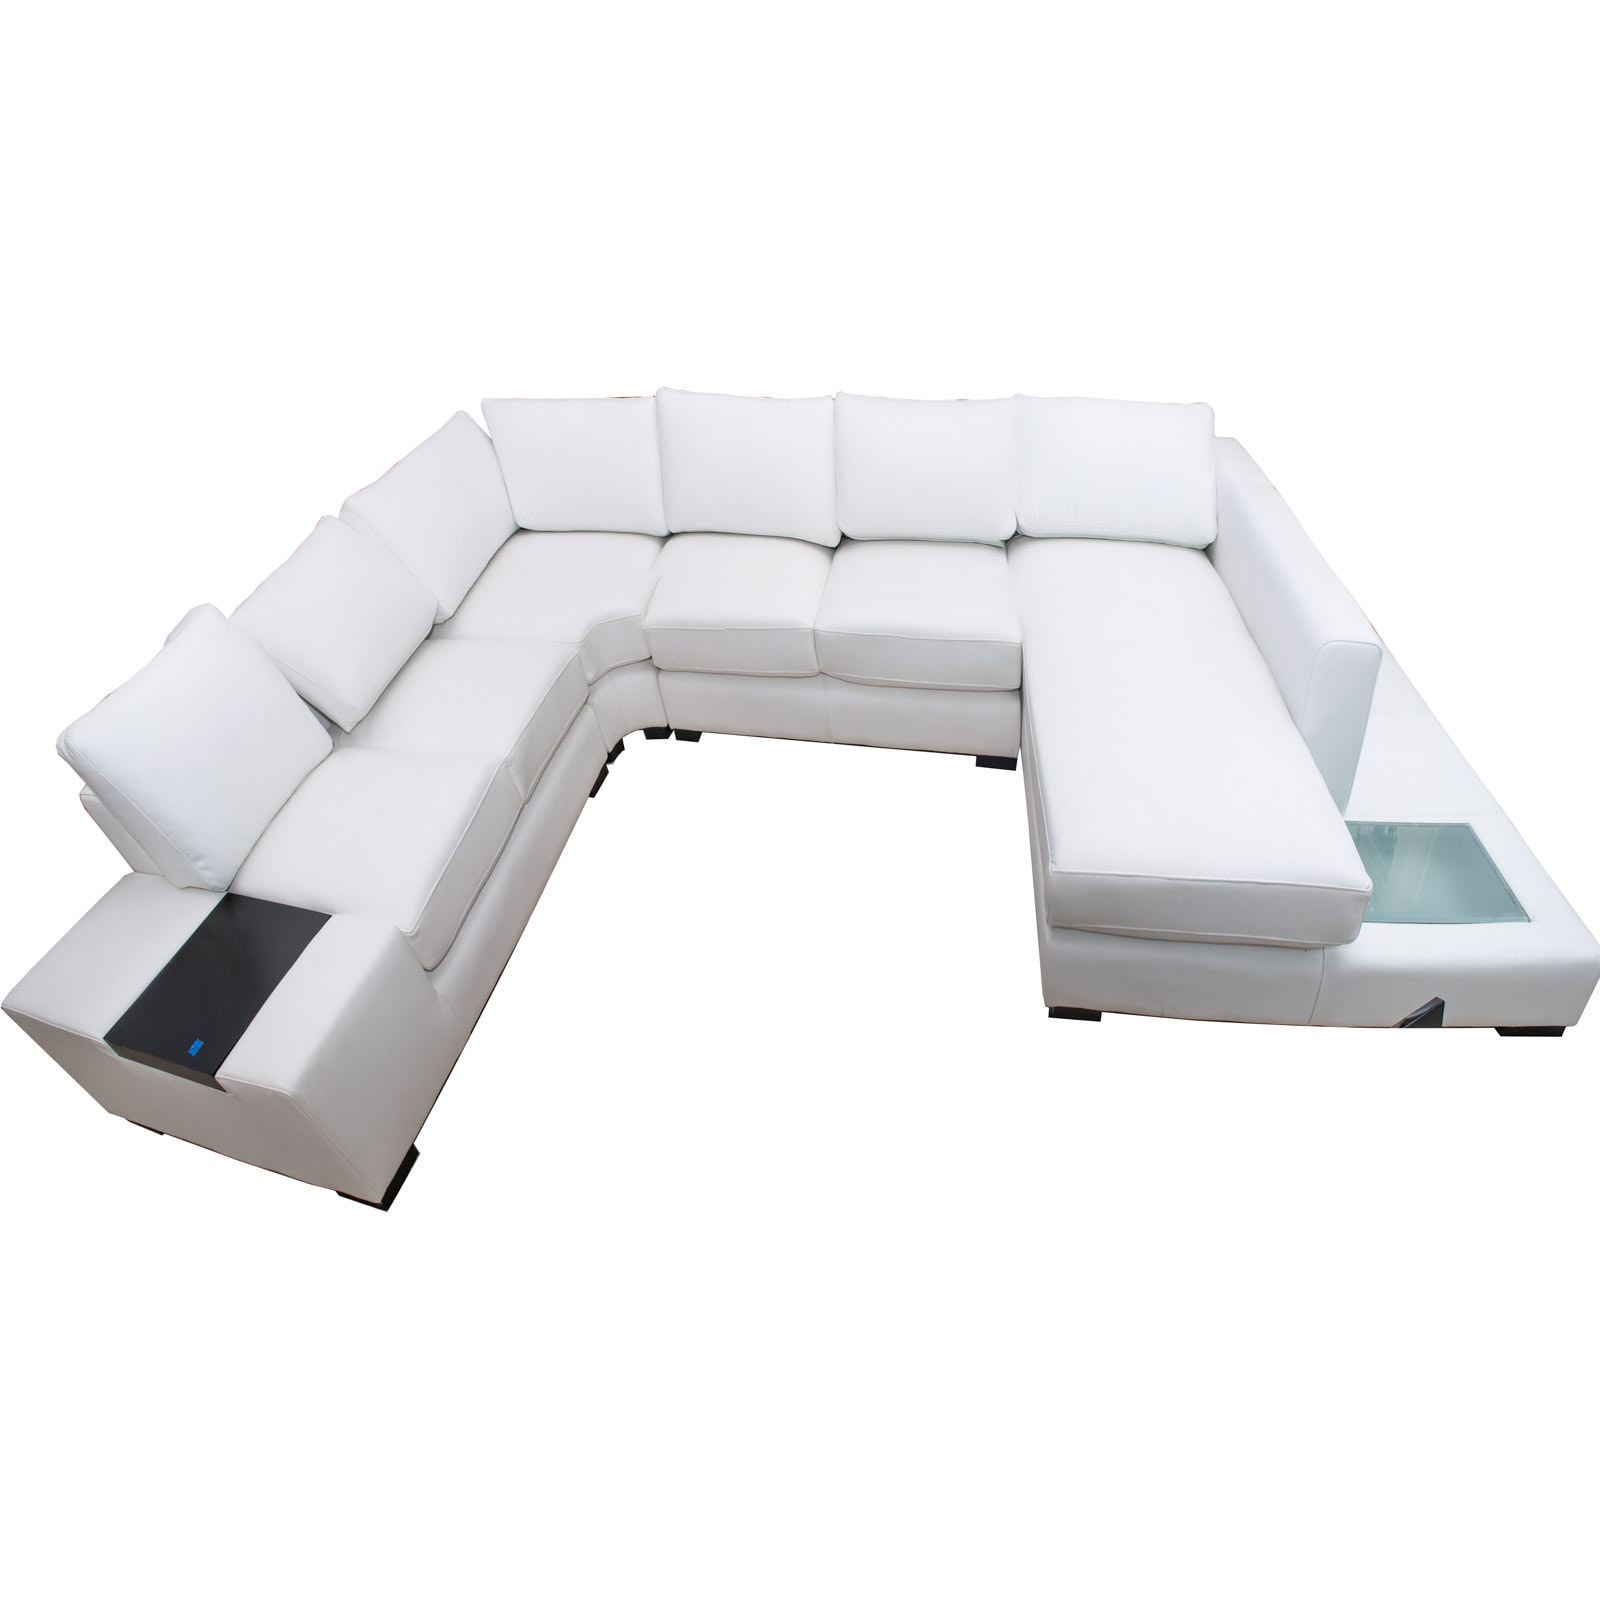 Substantial Contemporary Divani Casa White Eco-Leather Sectional Sofa